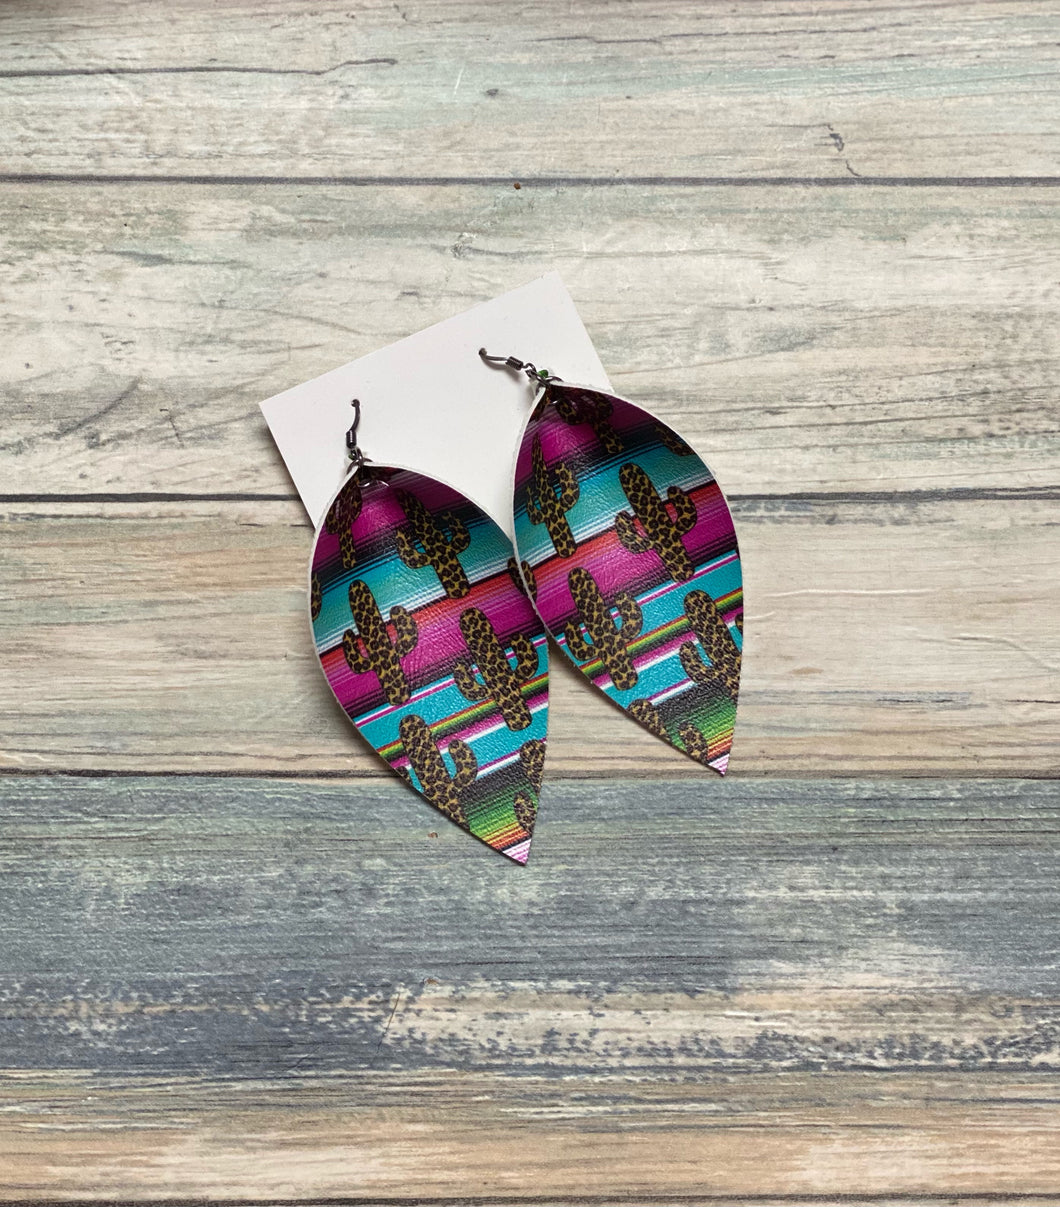 Cactus Serape Teardrop Shape Earrings (Locally Handmade)